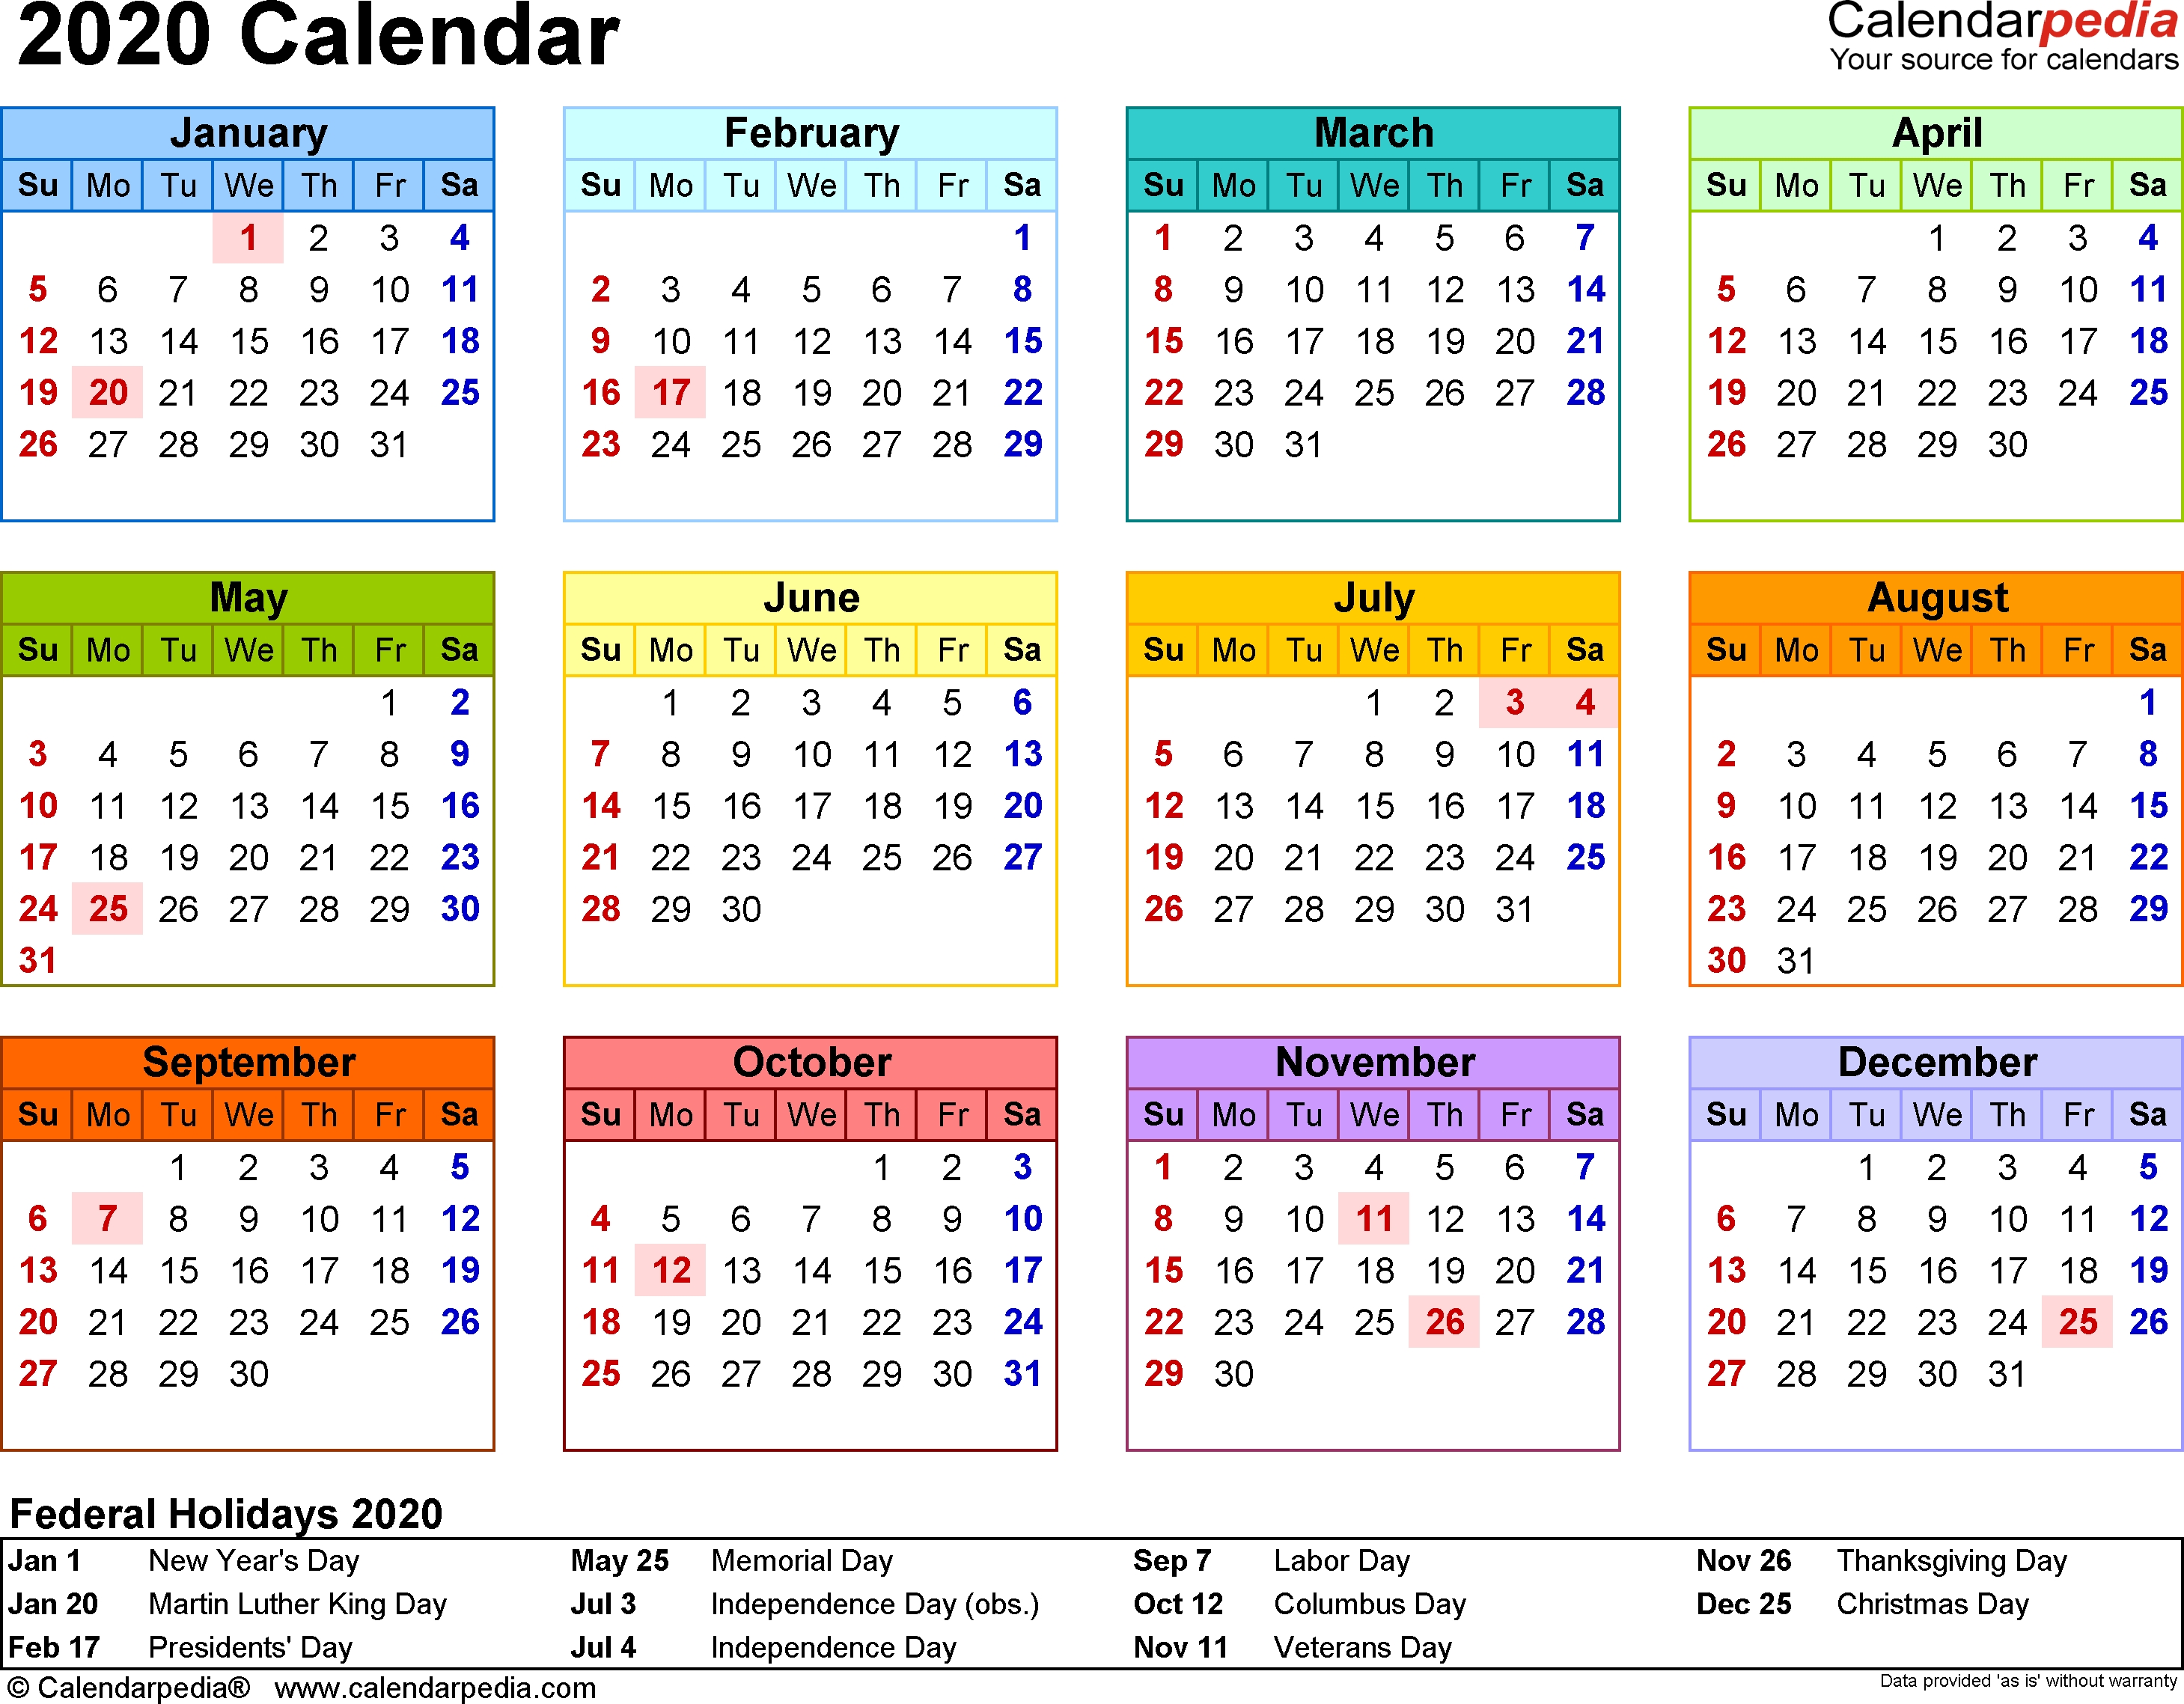 2020 Calendar - Download 17 Free Printable Excel Templates (.xlsx) regarding Malaysia 2020 Calendar